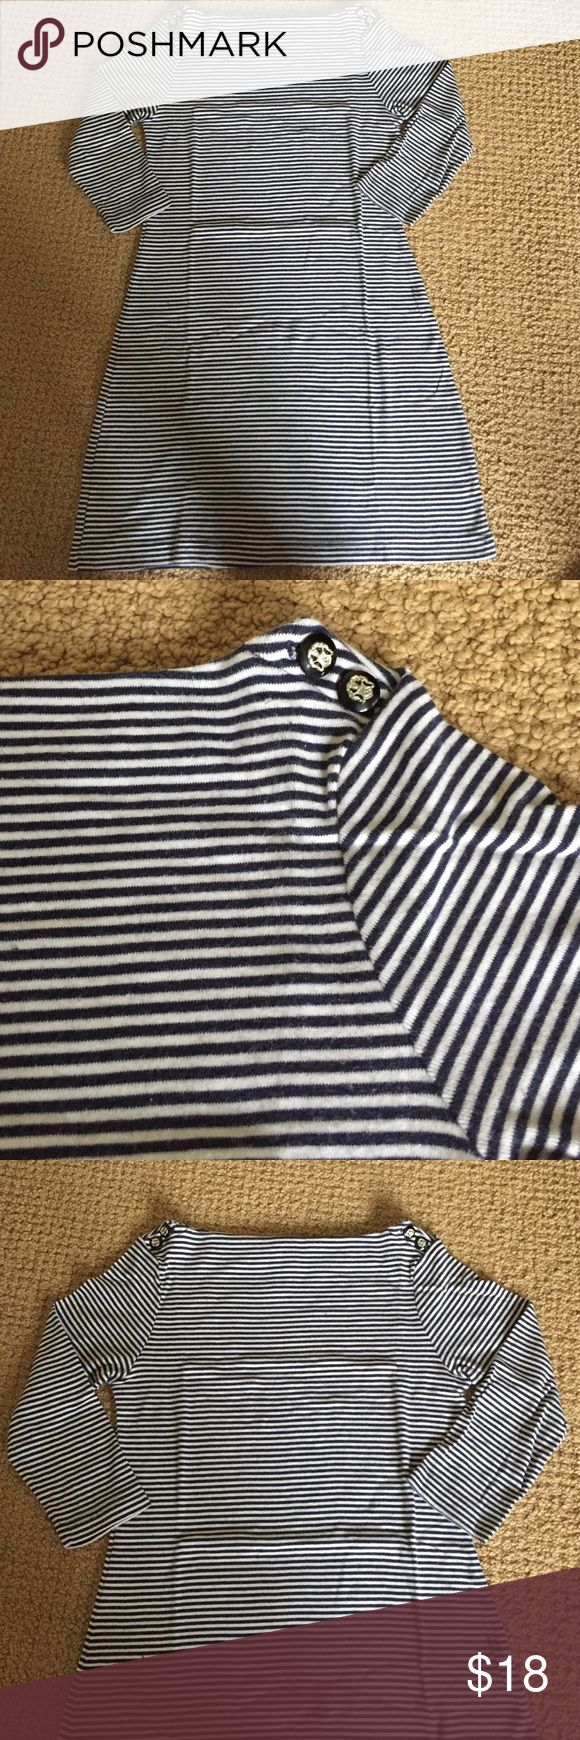 Gap Outlet Boatneck 3/4 Sleeve Knit Dress great condition == perfect worn on its own or with leggings! GAP Dresses Long Sleeve